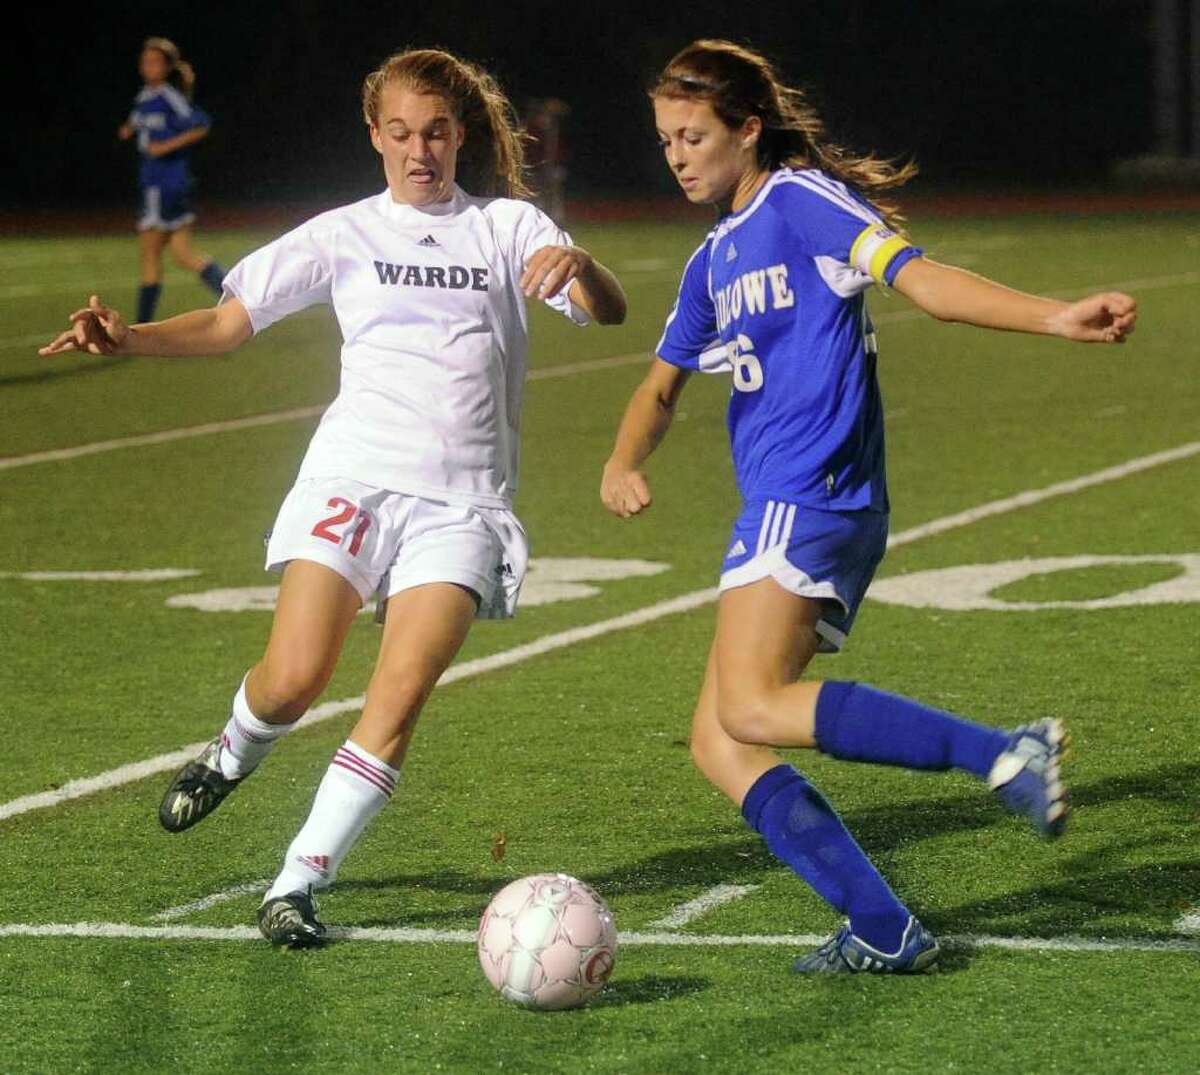 Warde's Jenny Jacob, left, and Ludlowe's Lucia Harold, right, compete for control of the ball during Tuesday's game at Fairfield Warde's field on October 26, 2010.